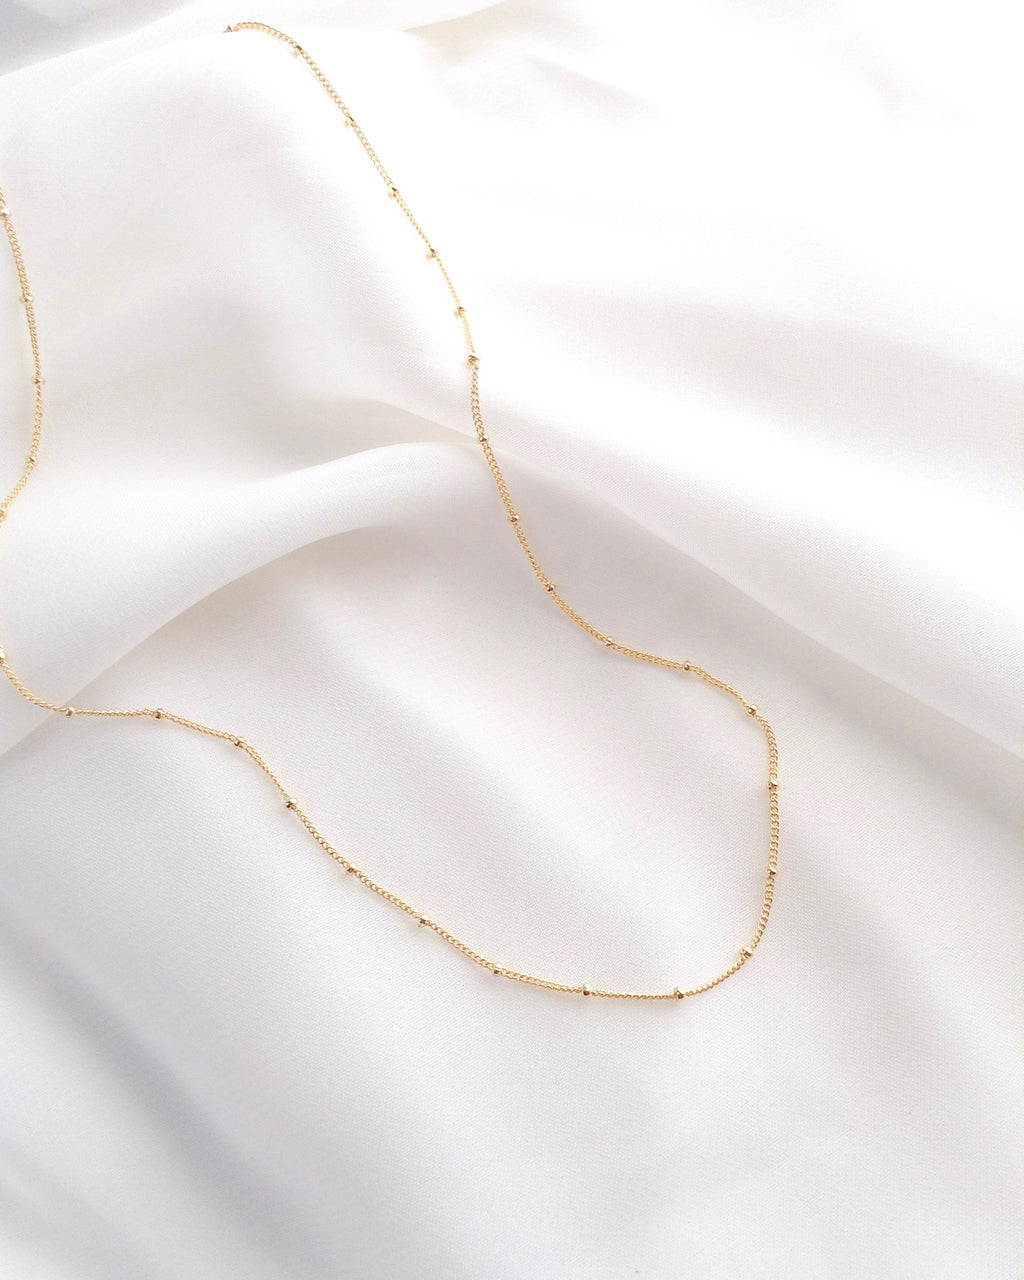 Satellite Chain Simple Elegant Everyday Necklace | IB Jewelry